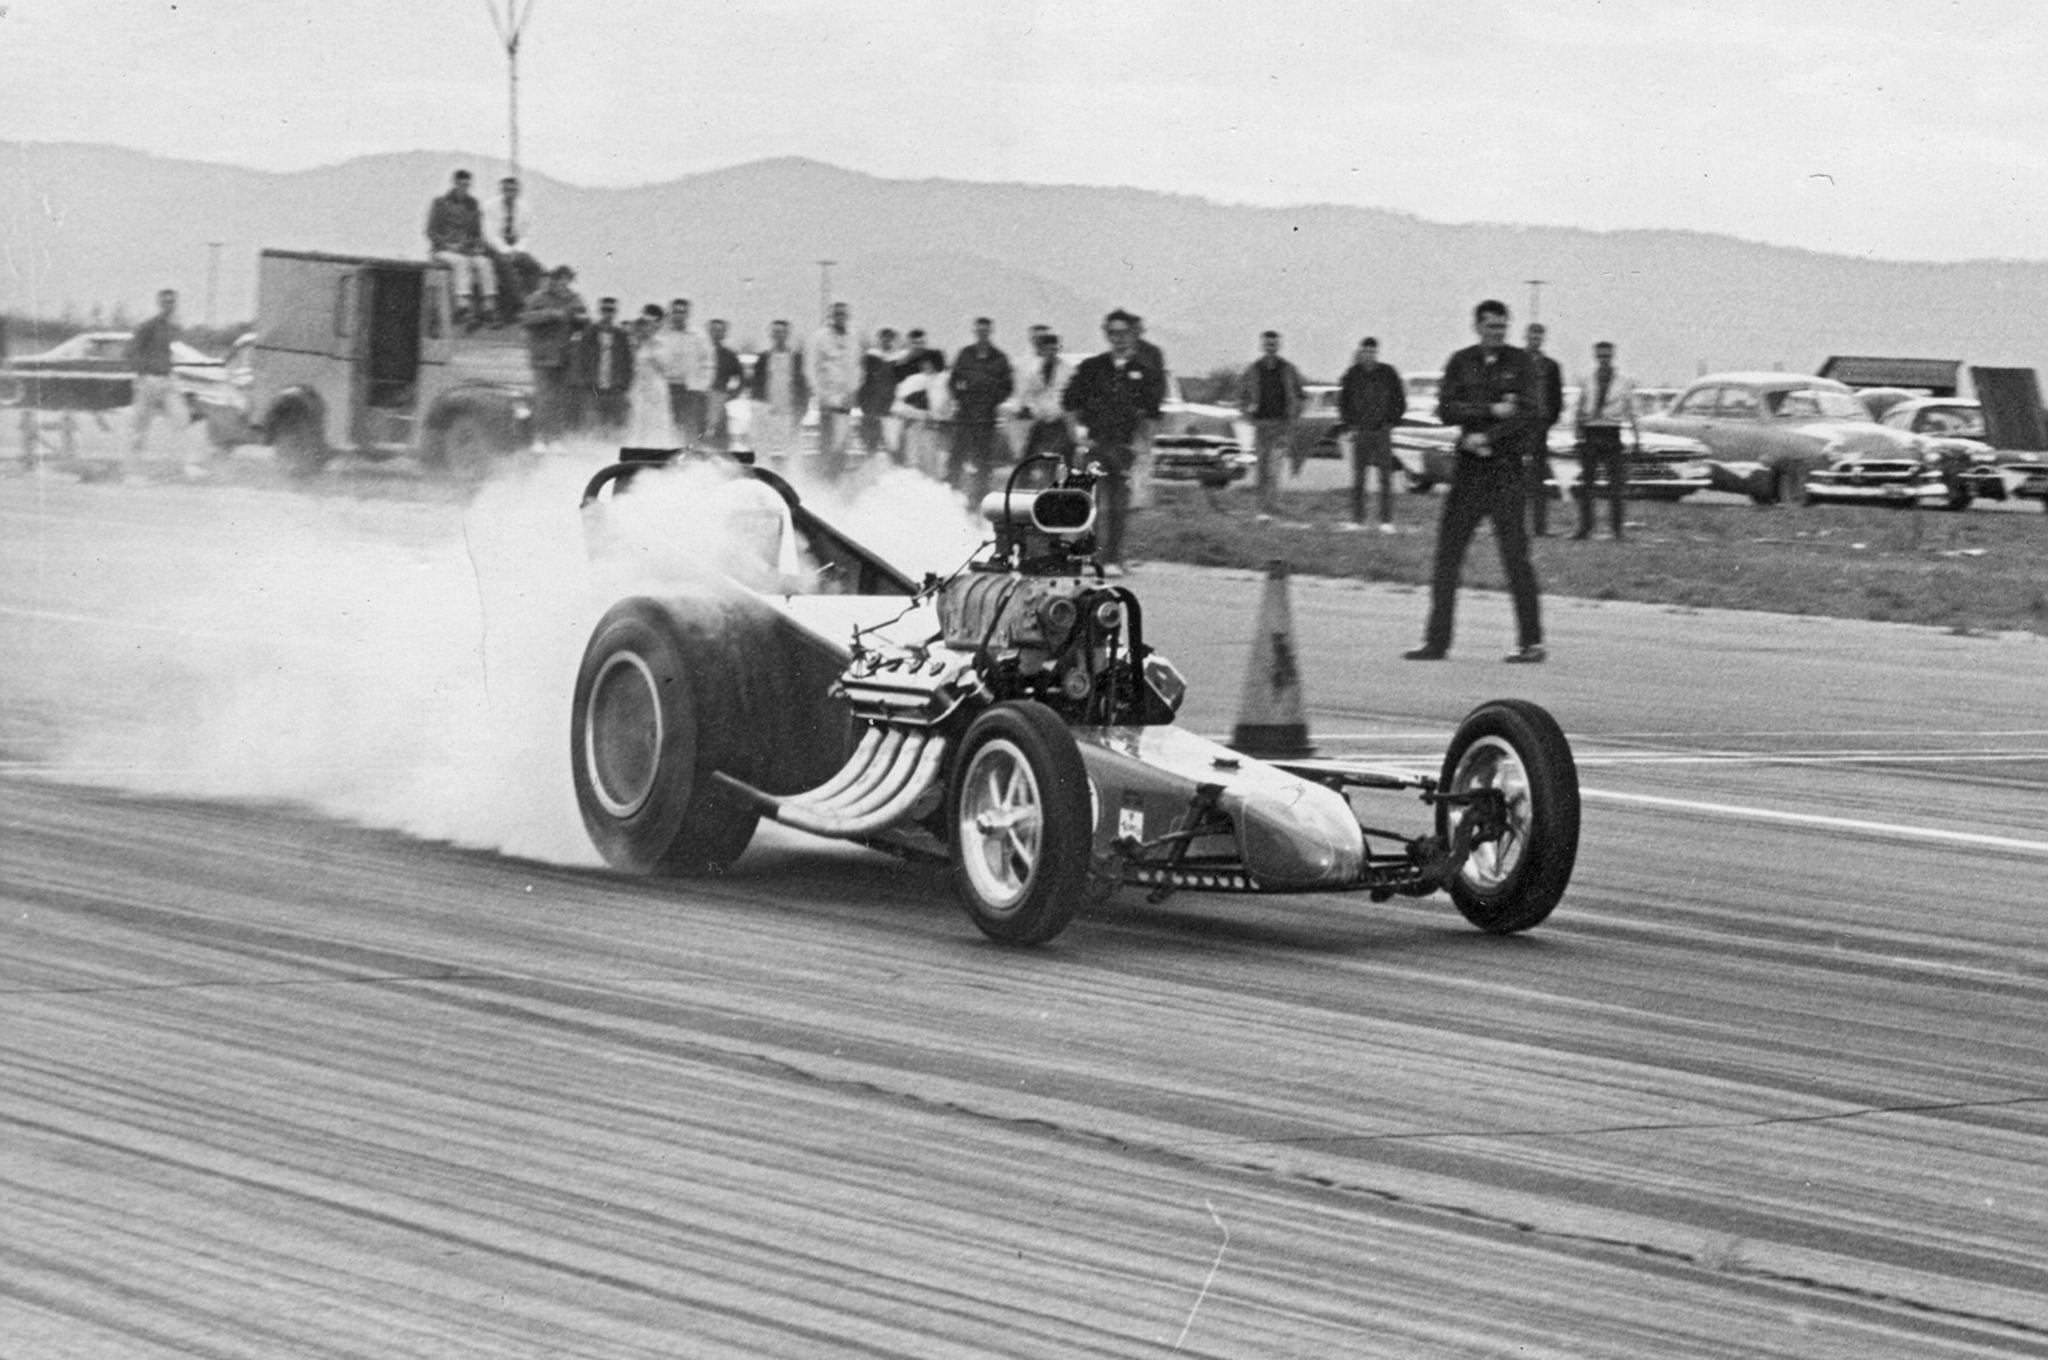 first-use-of-nitrous-on-a-dragster-thrifty-dragster-racing (1)